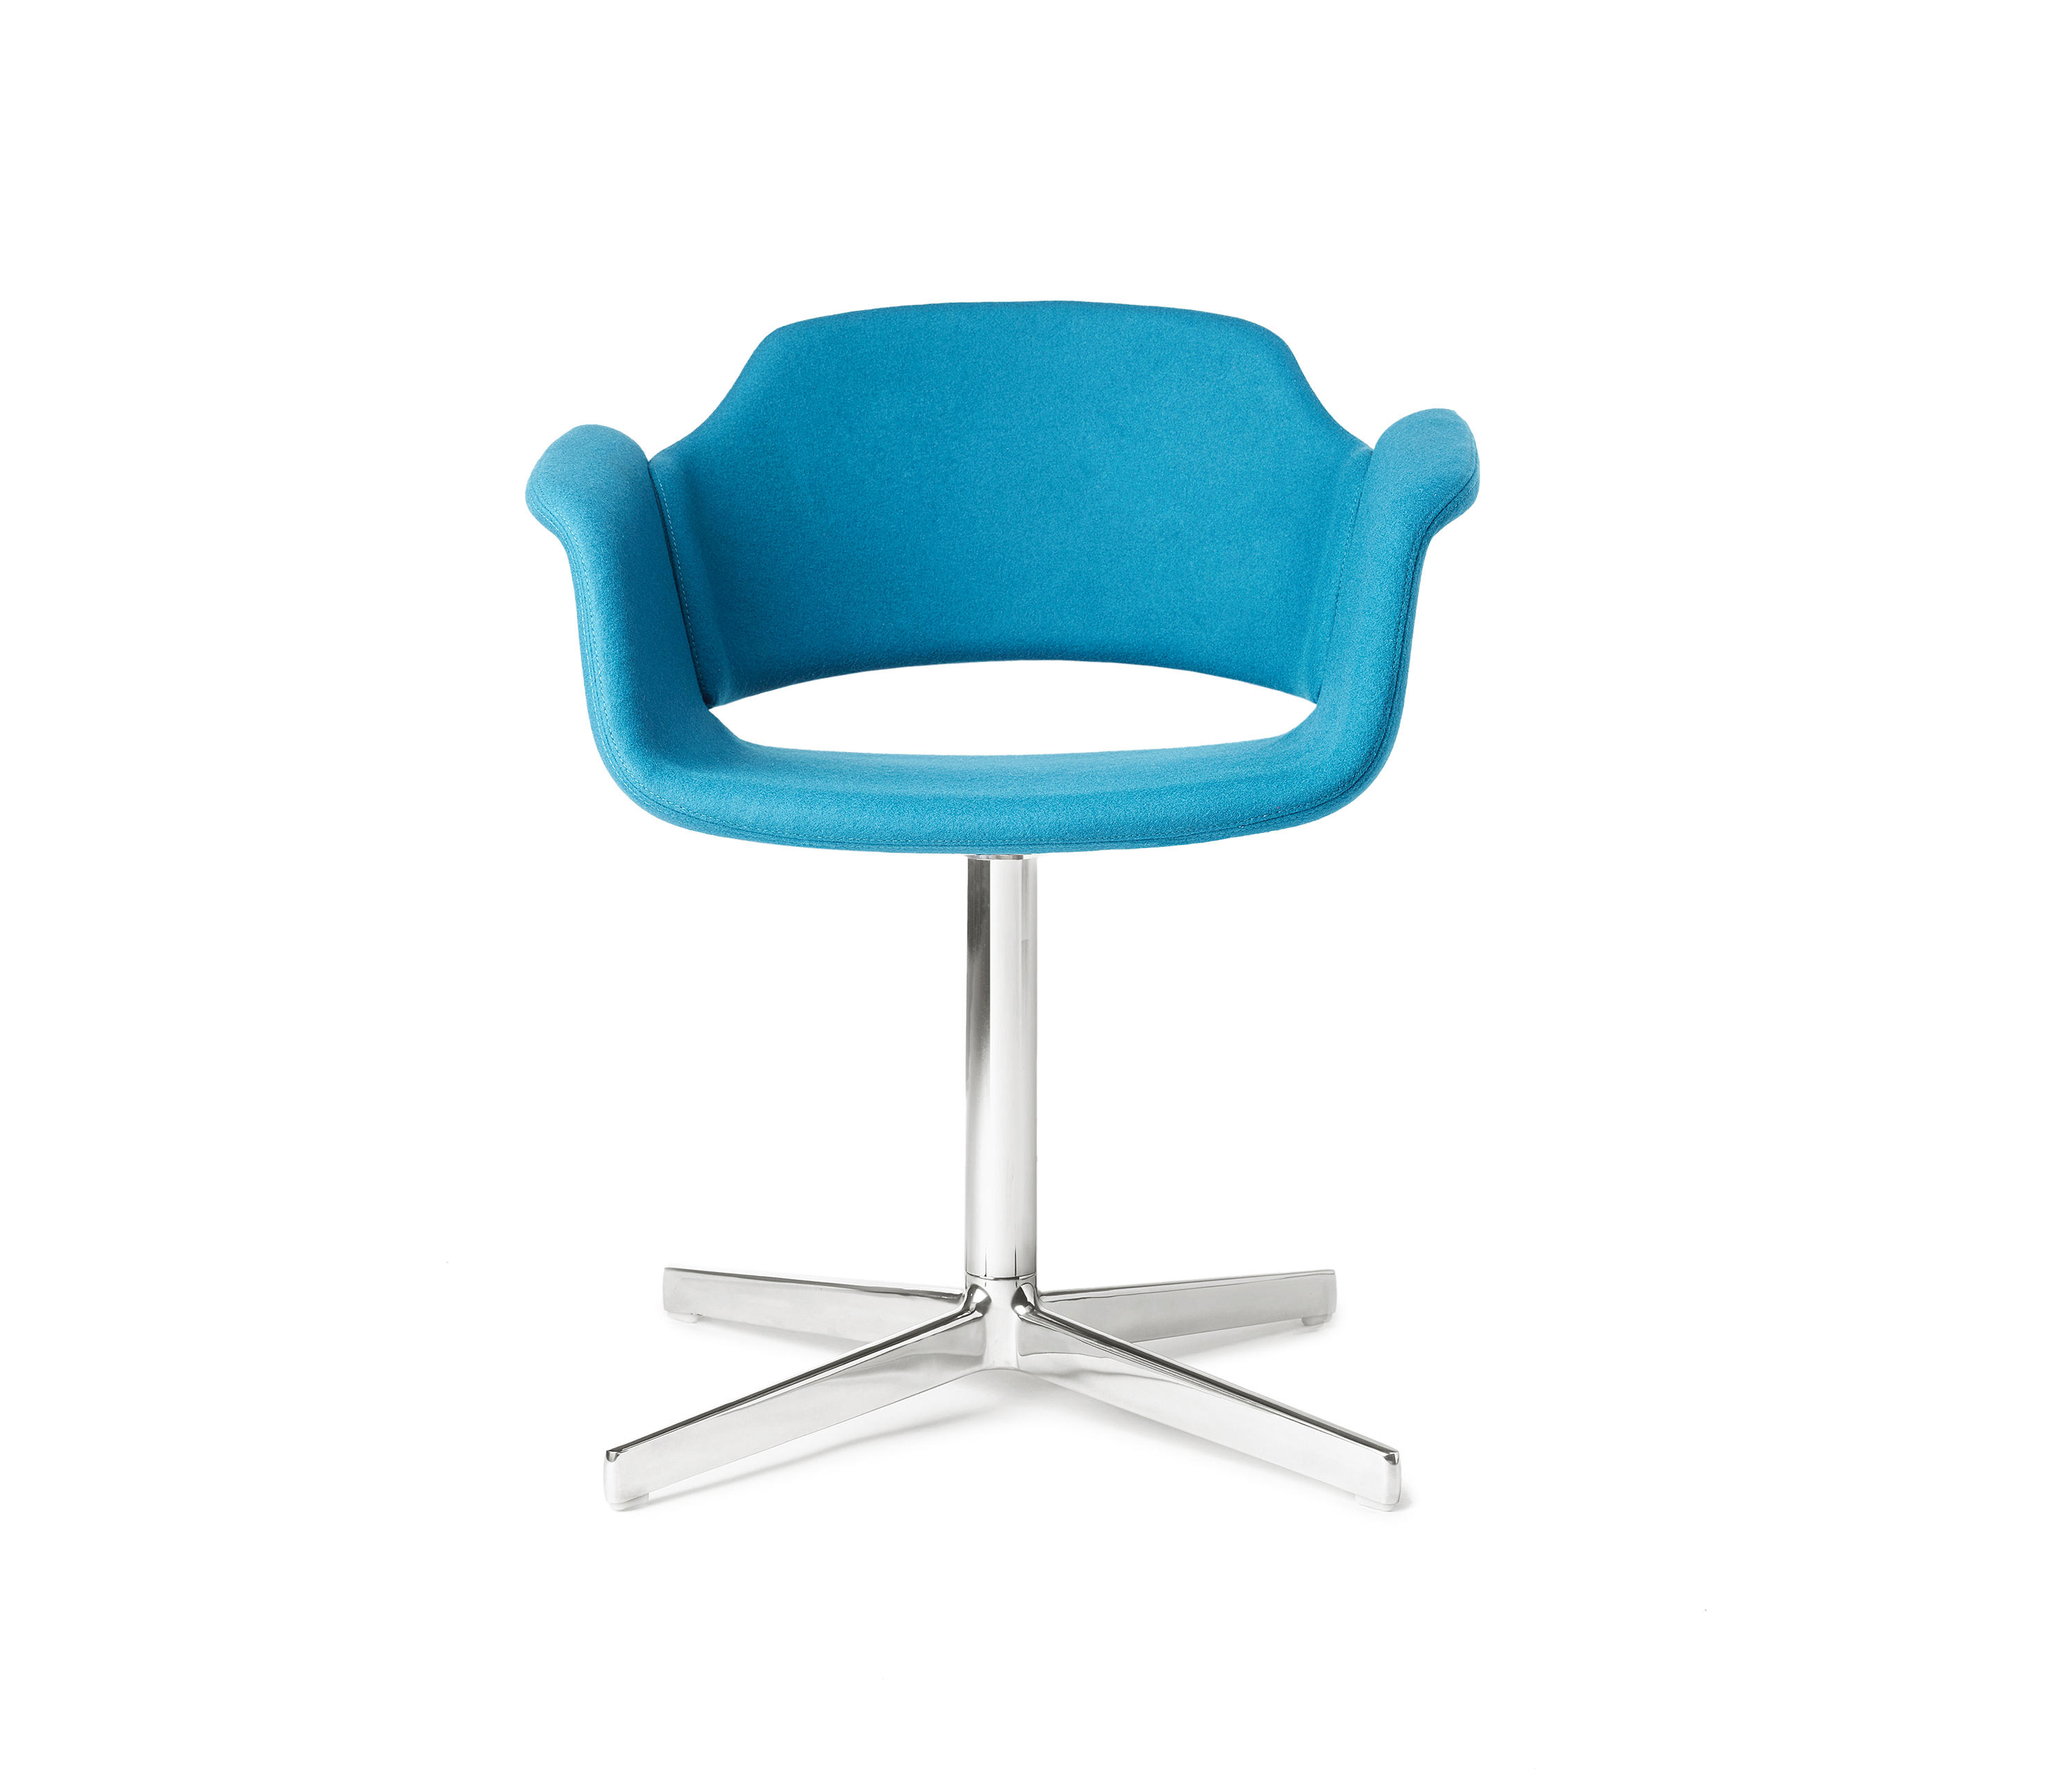 desk hayneedle cfm product studyzoneiideskchairtealgray aqua ii zone chair gray teal study